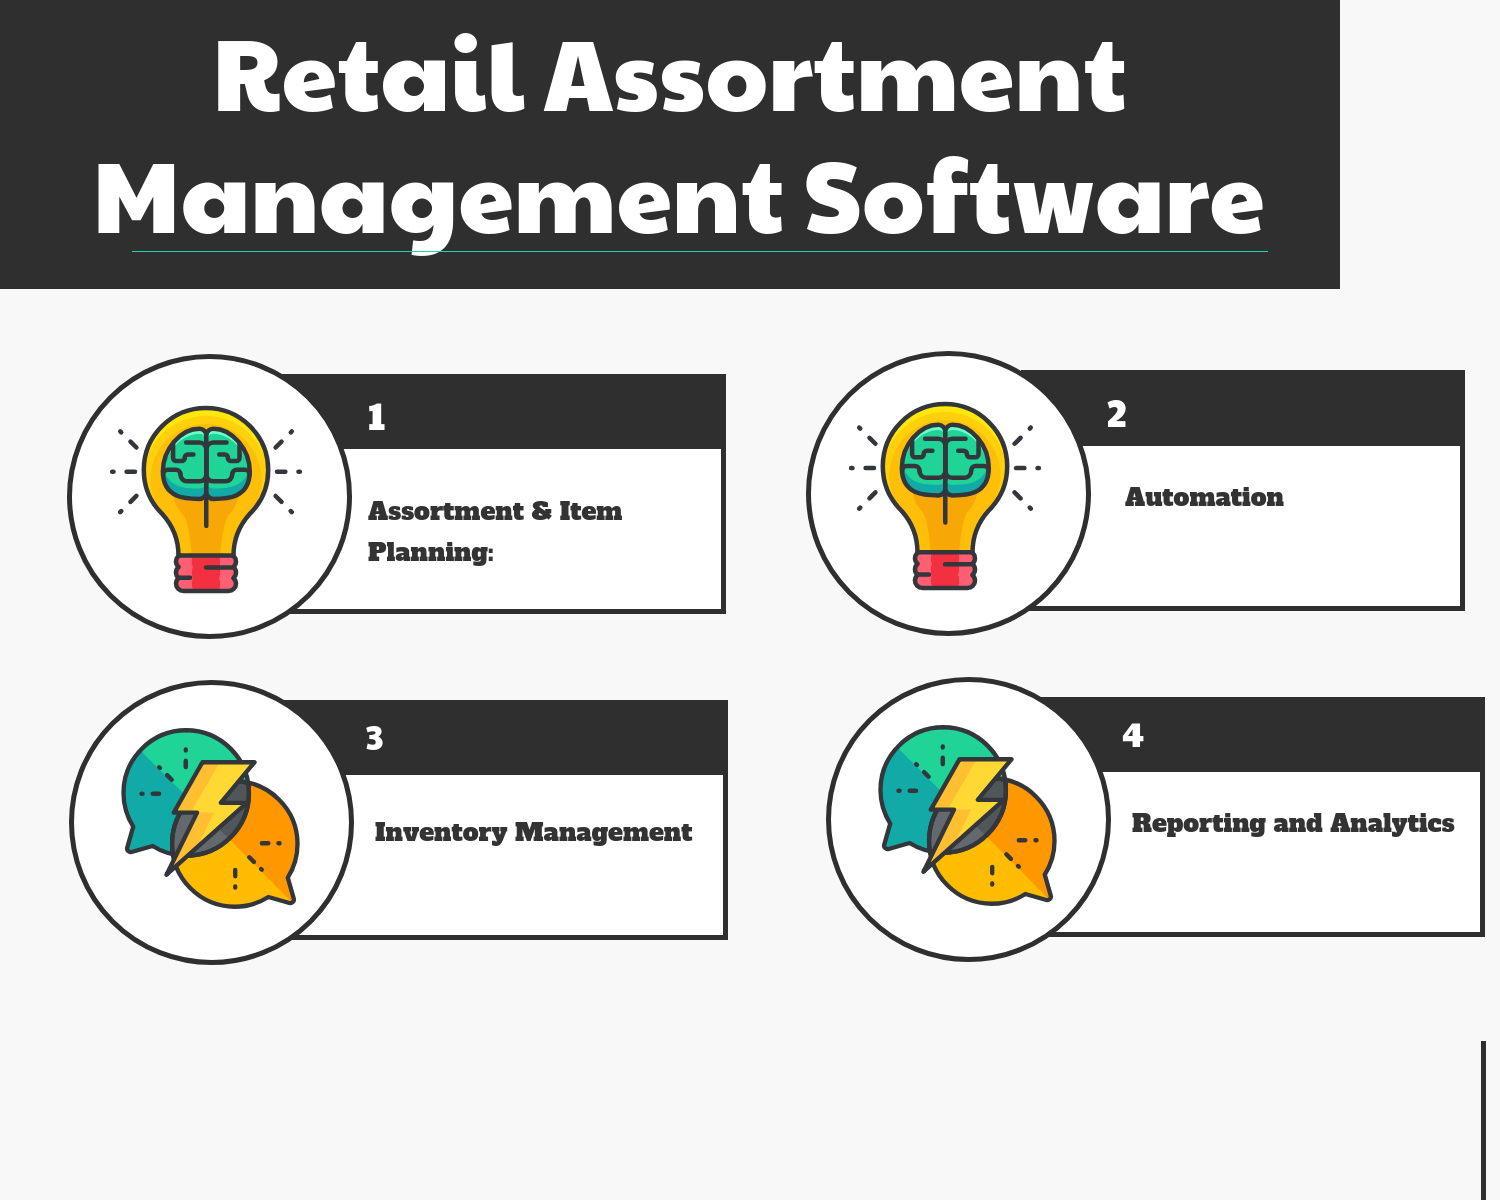 Top 5 Retail Assortment Management Software In 2021 Reviews Features Pricing Comparison Pat Research B2b Reviews Buying Guides Best Practices Management Predictive Analytics Software